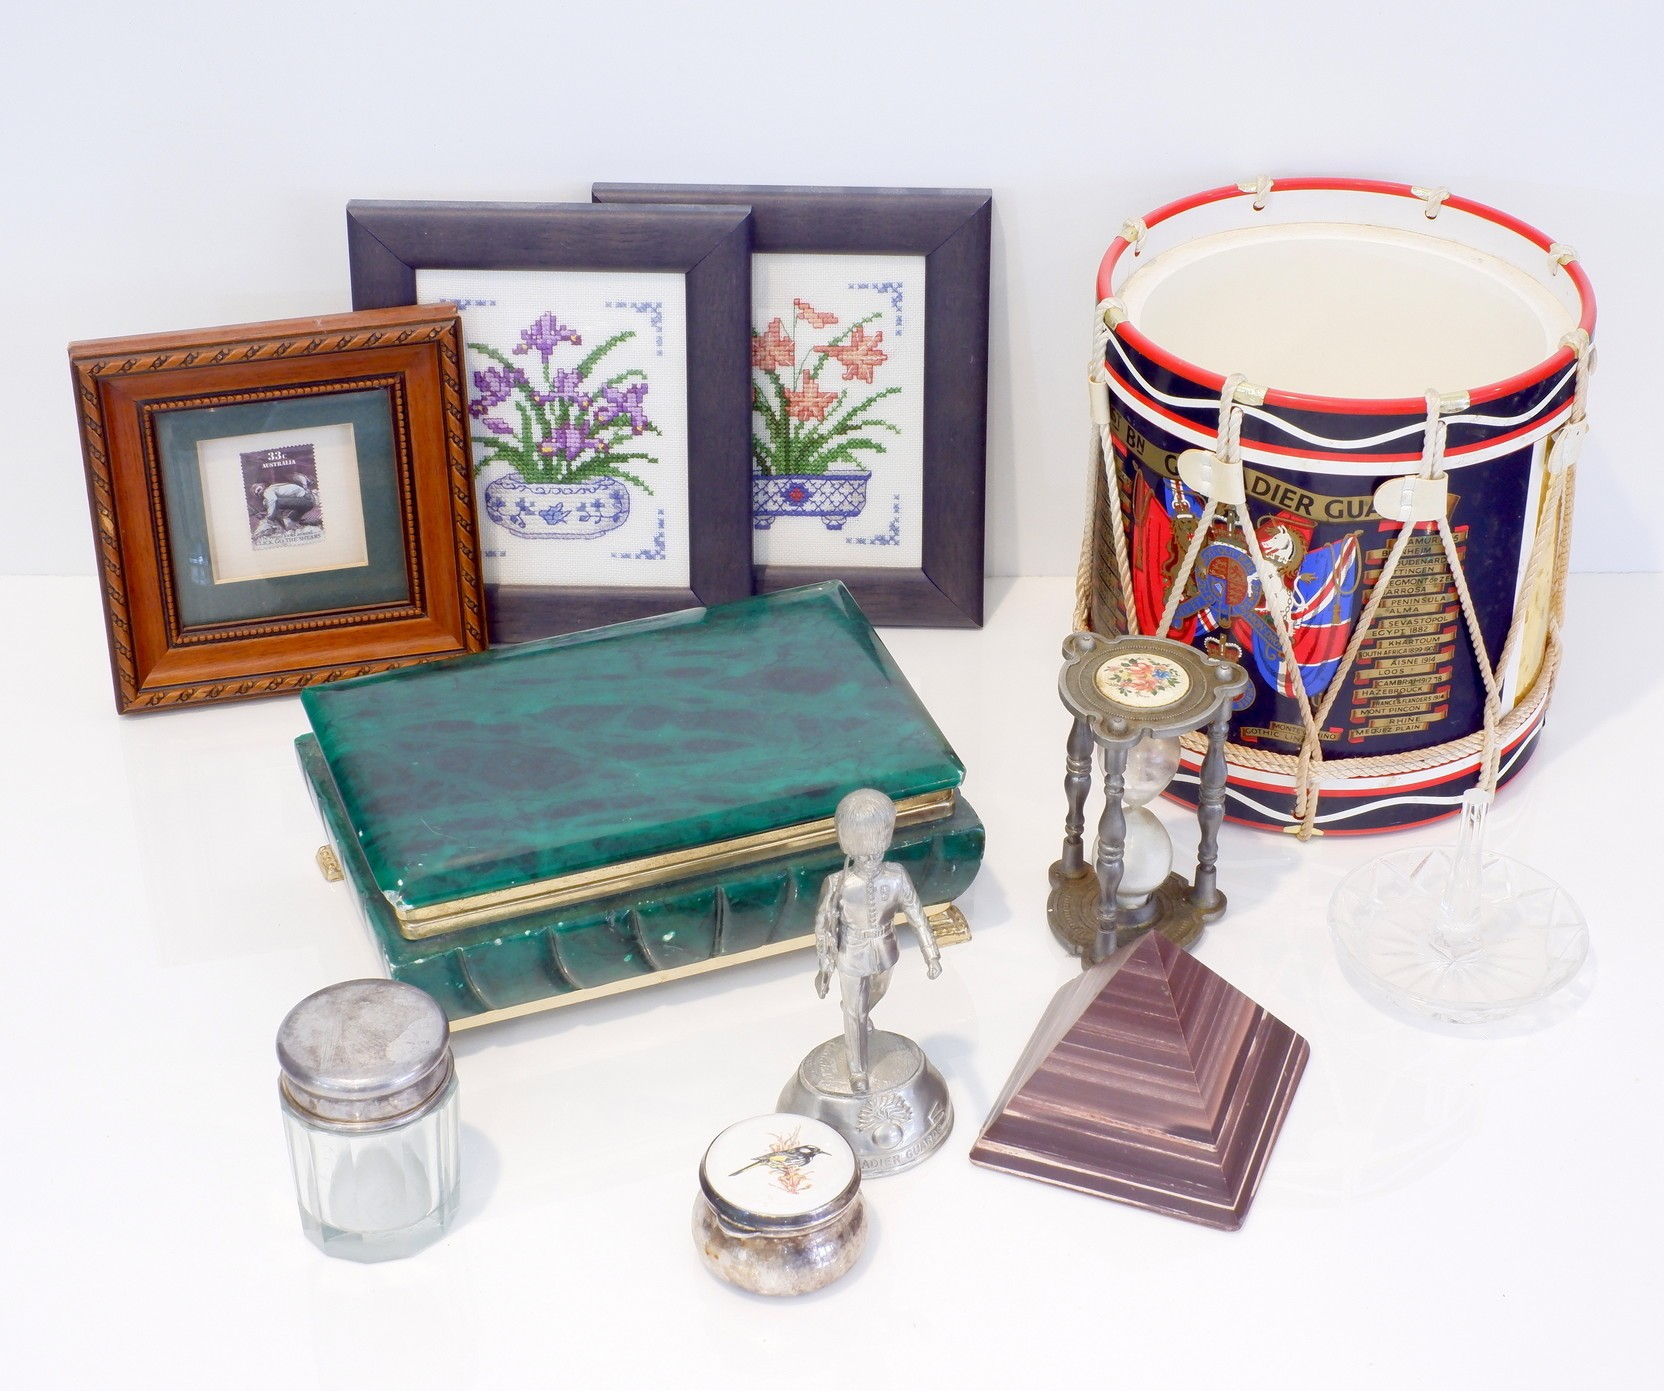 'Grenadier Guard Decorated Champagne Bucket, Stained Alabaster Jewellery Box, Two Needleworks and More'